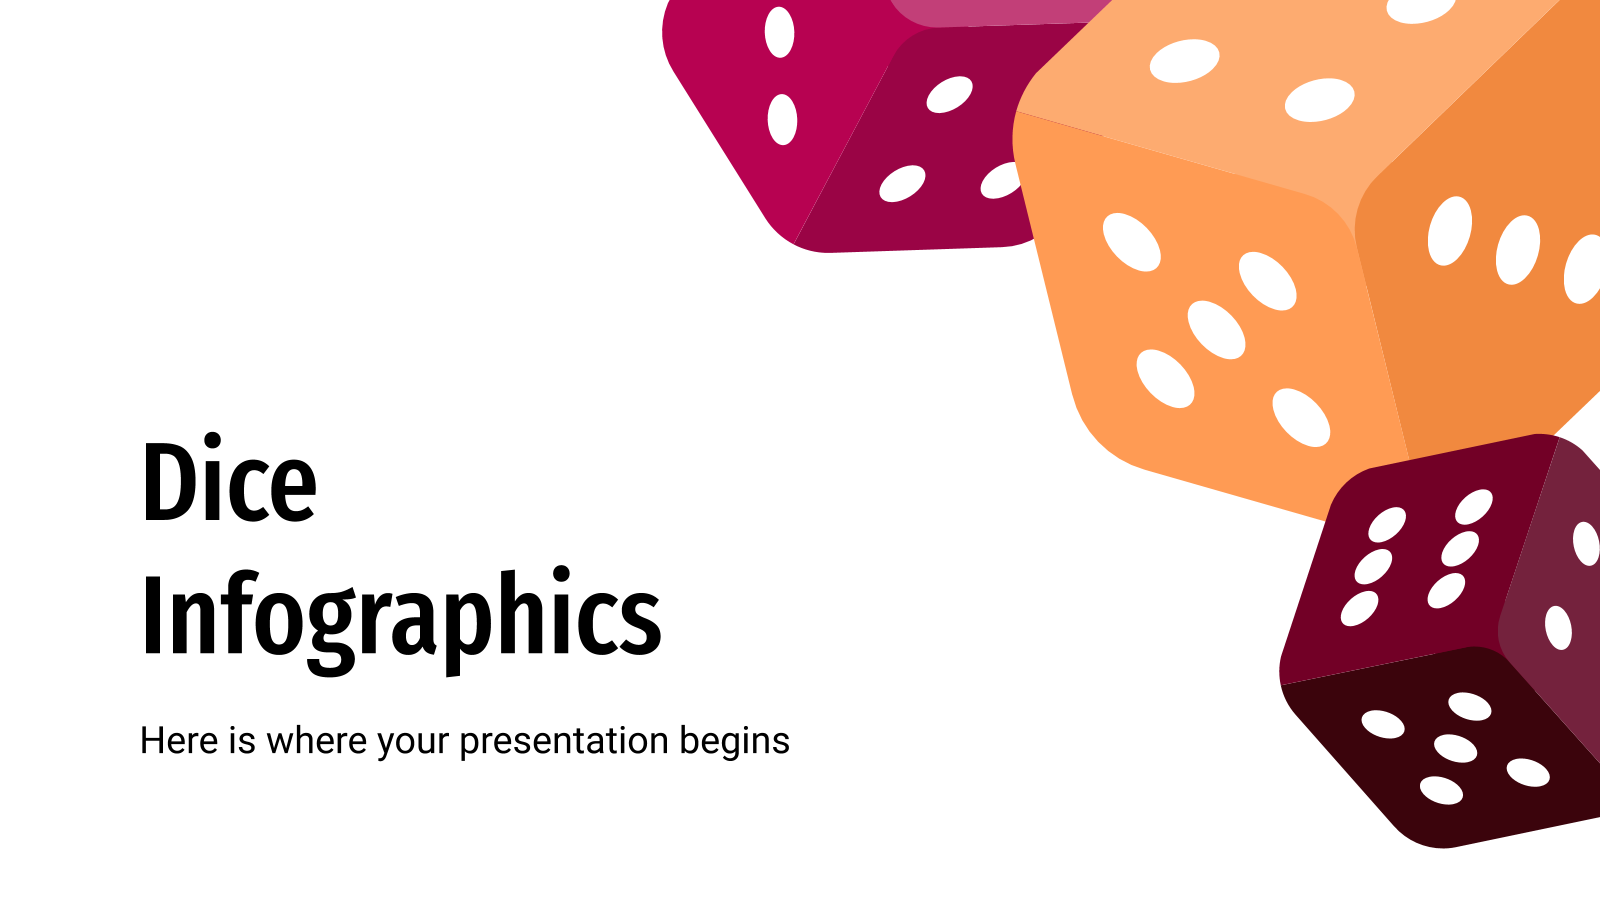 Dice Infographics presentation template